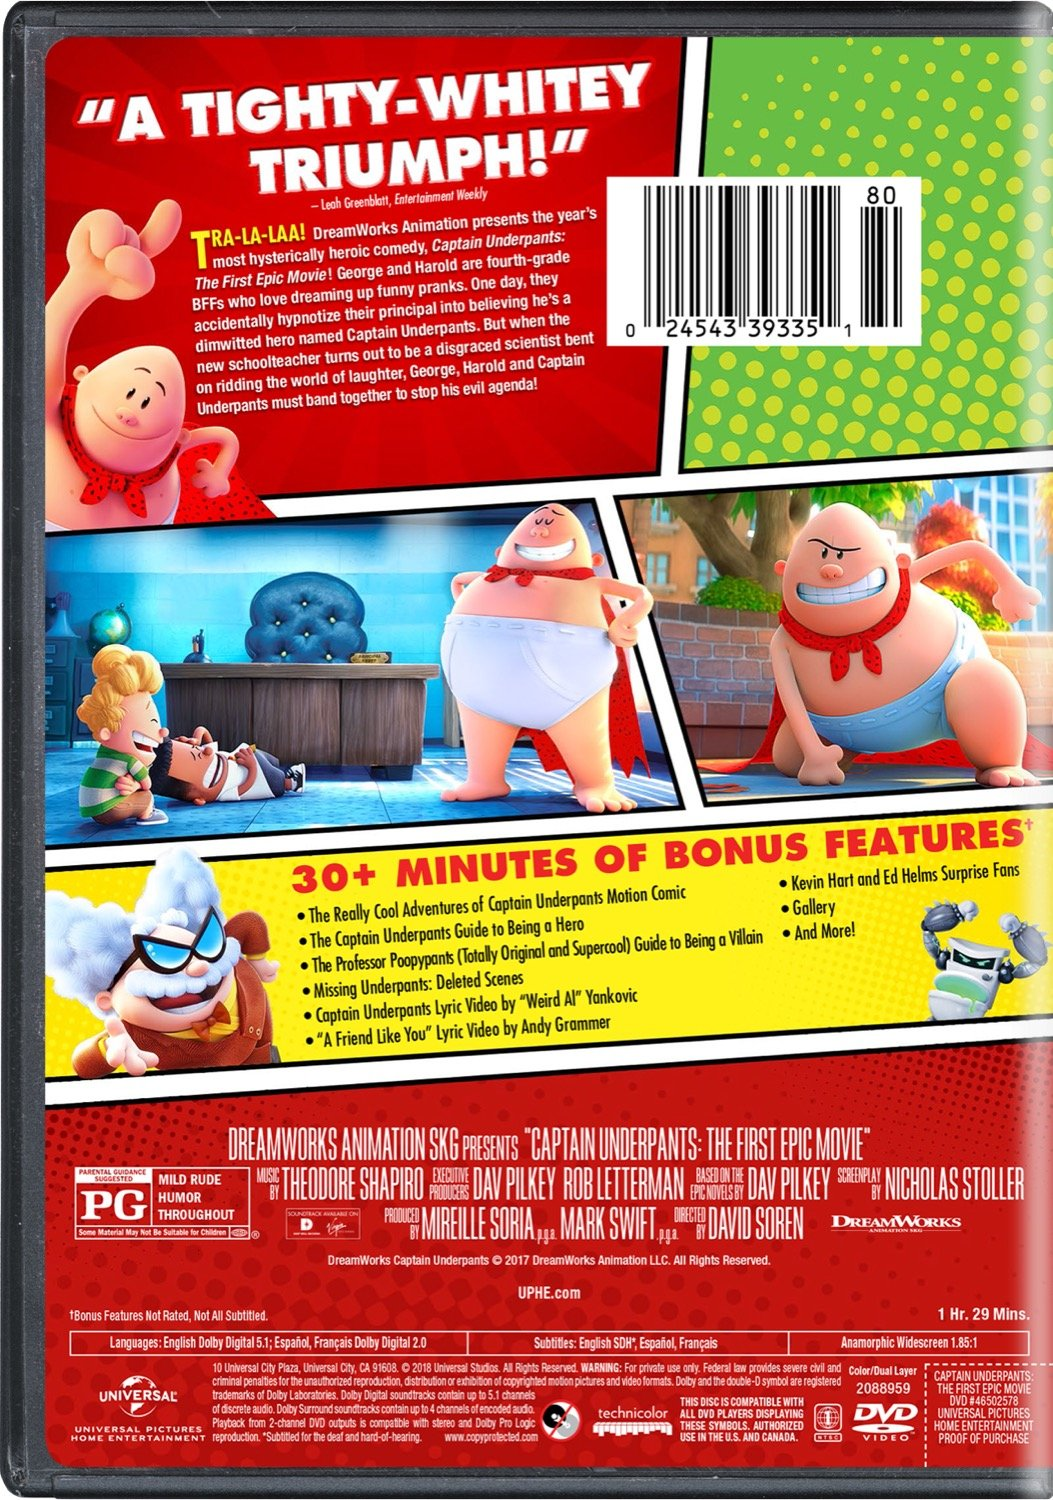 Amazon Com Captain Underpants The First Epic Movie Kevin Hart Ed Helms Nick Kroll Thomas Middleditch Jordan Peele Kristen Schaal David Soren Mireille Soria Mark Swift Nicholas Stoller Movies Tv